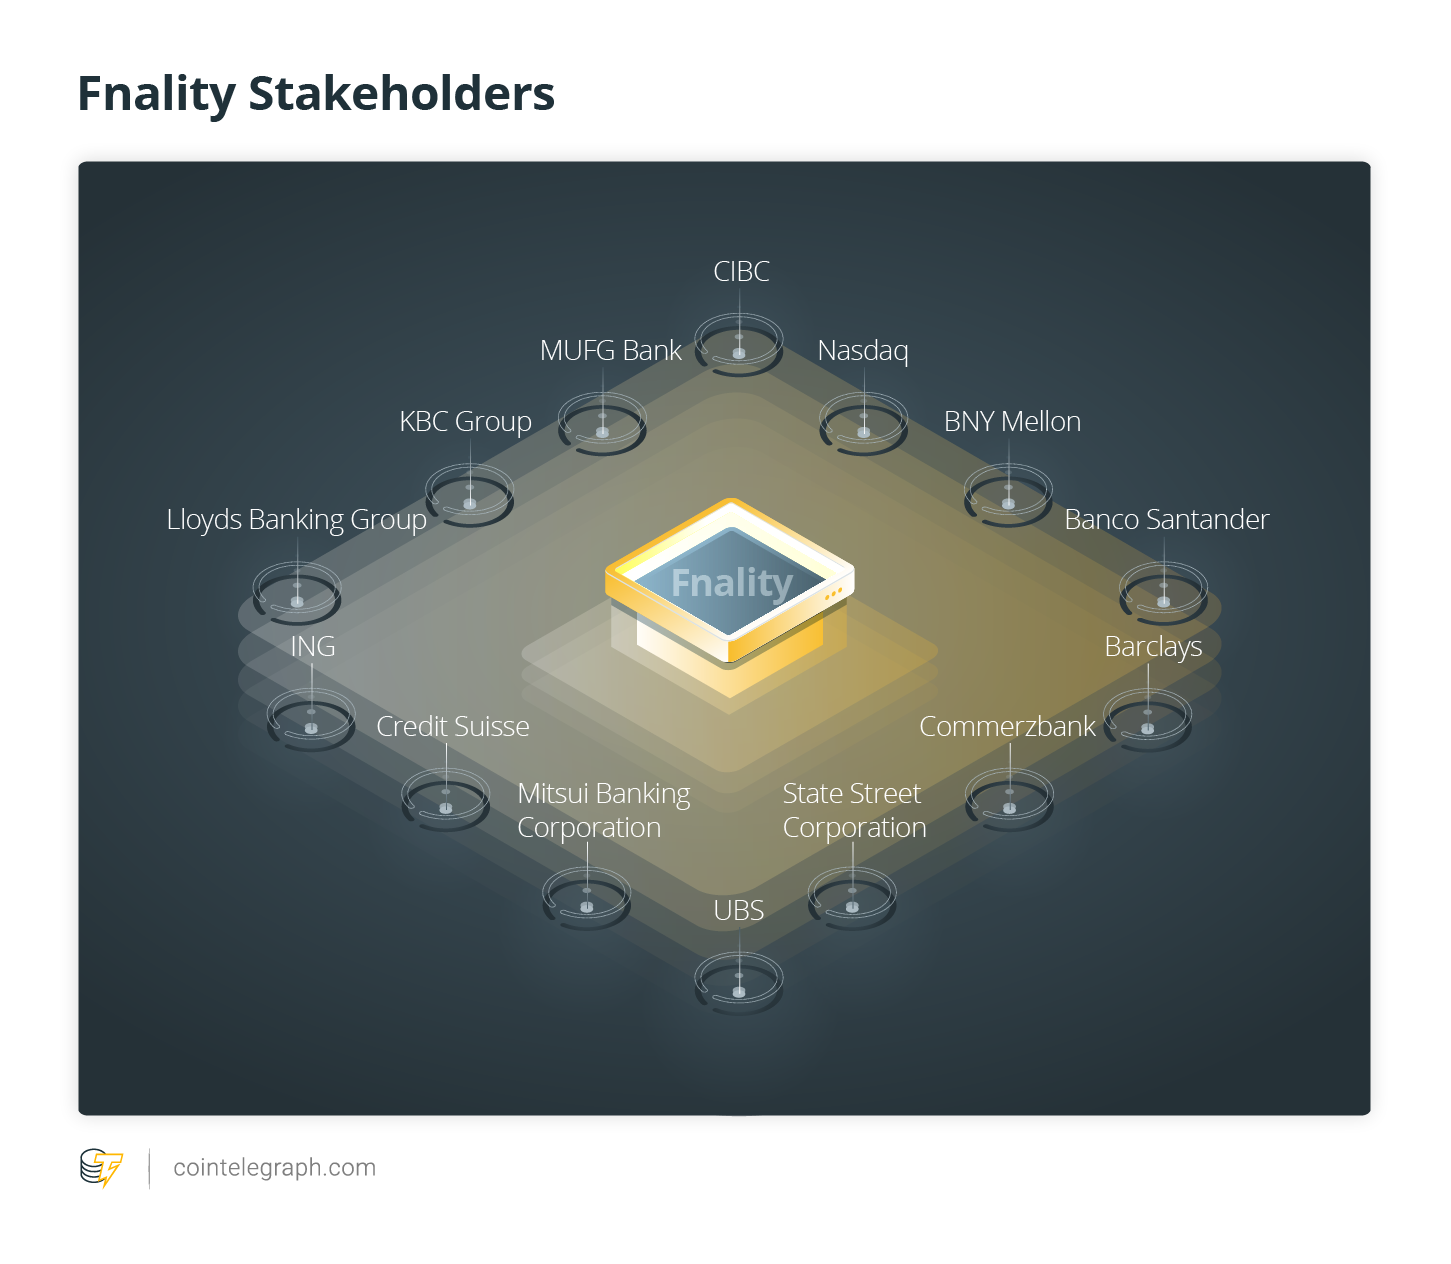 Fnality Stakeholders